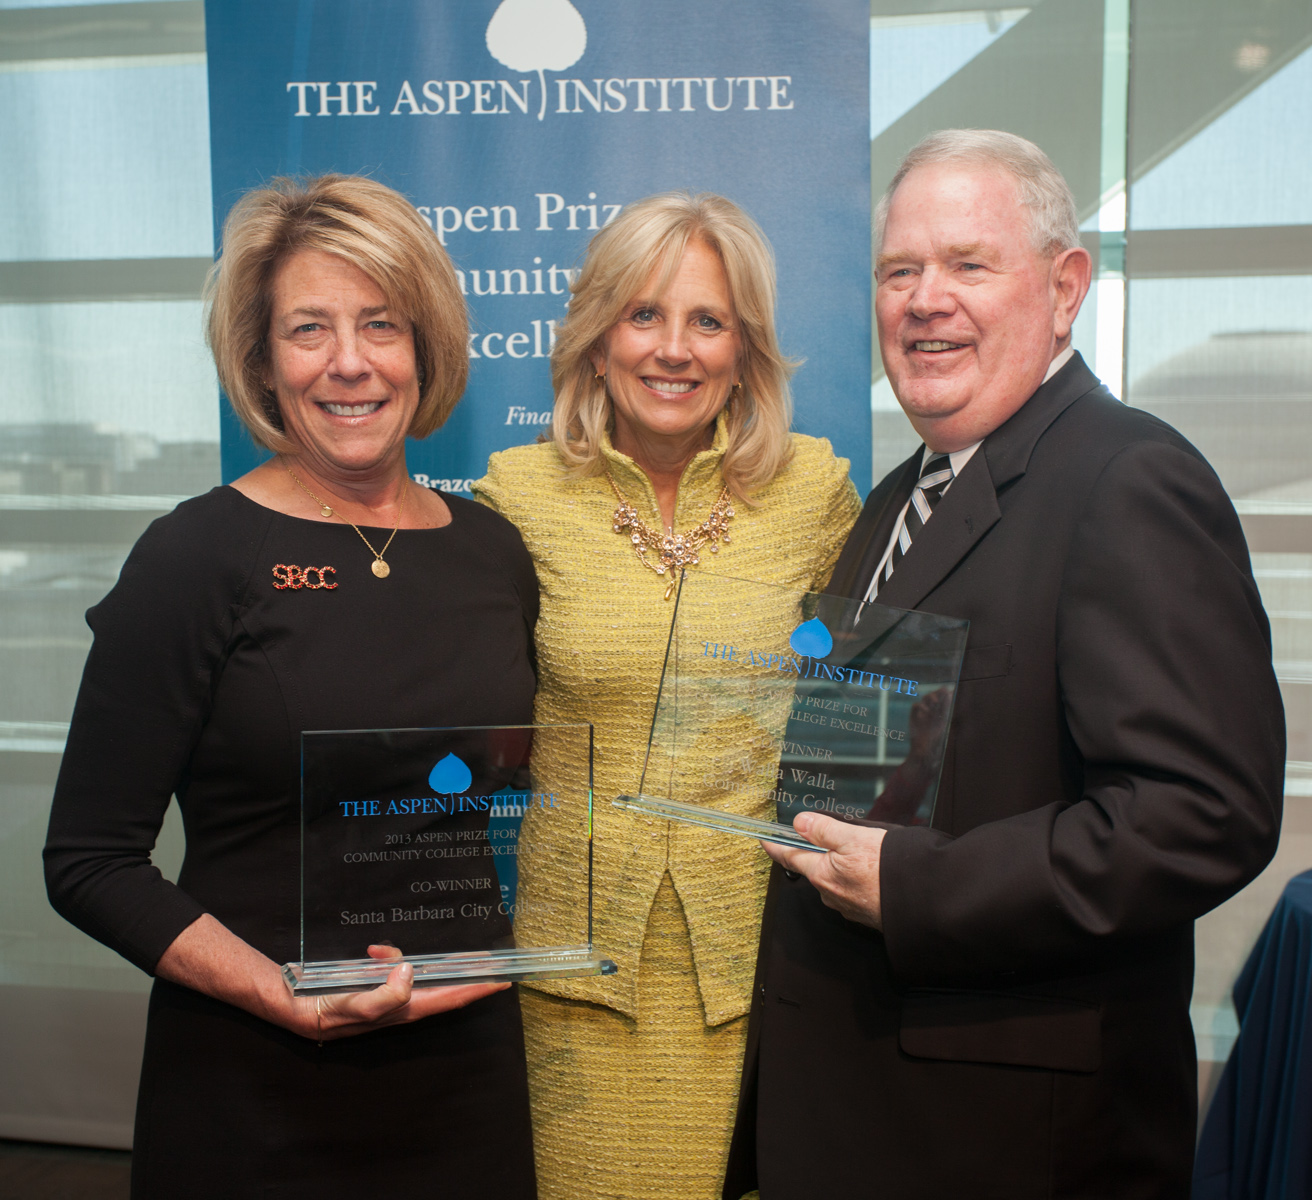 Dr. Jill Biden with the co-winners of the 2013 Aspen Community College Excellence Prize